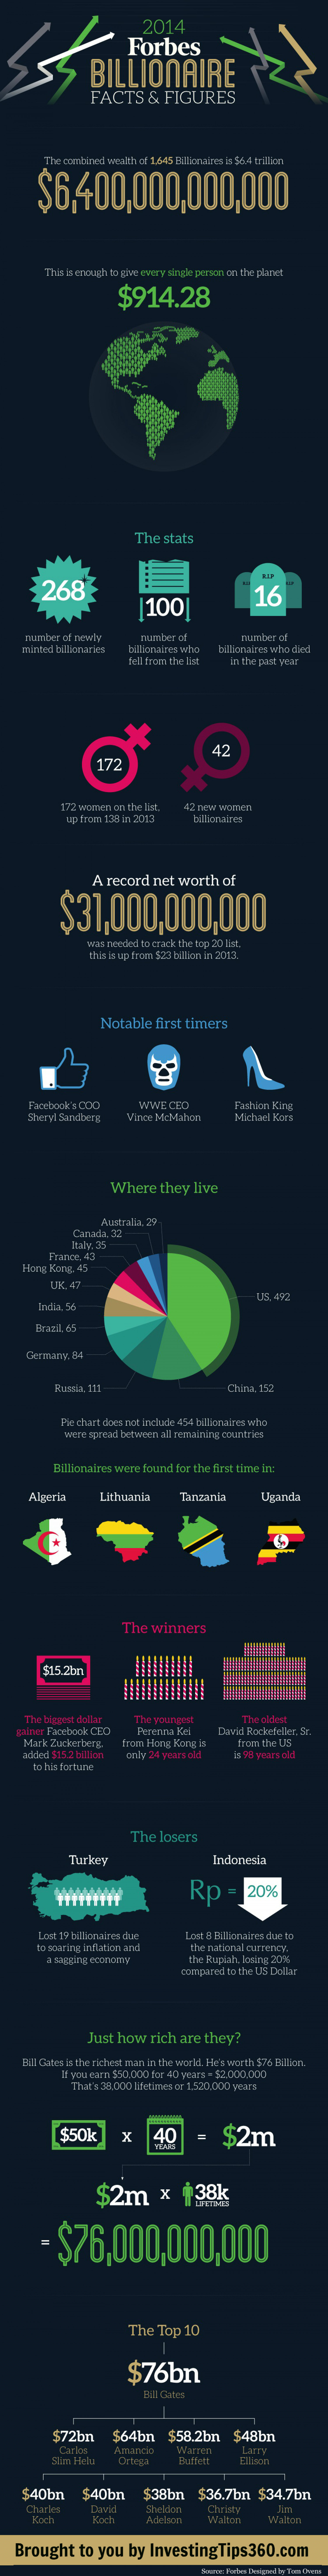 2014 Forbes Billionaire Facts & Figures Infographic